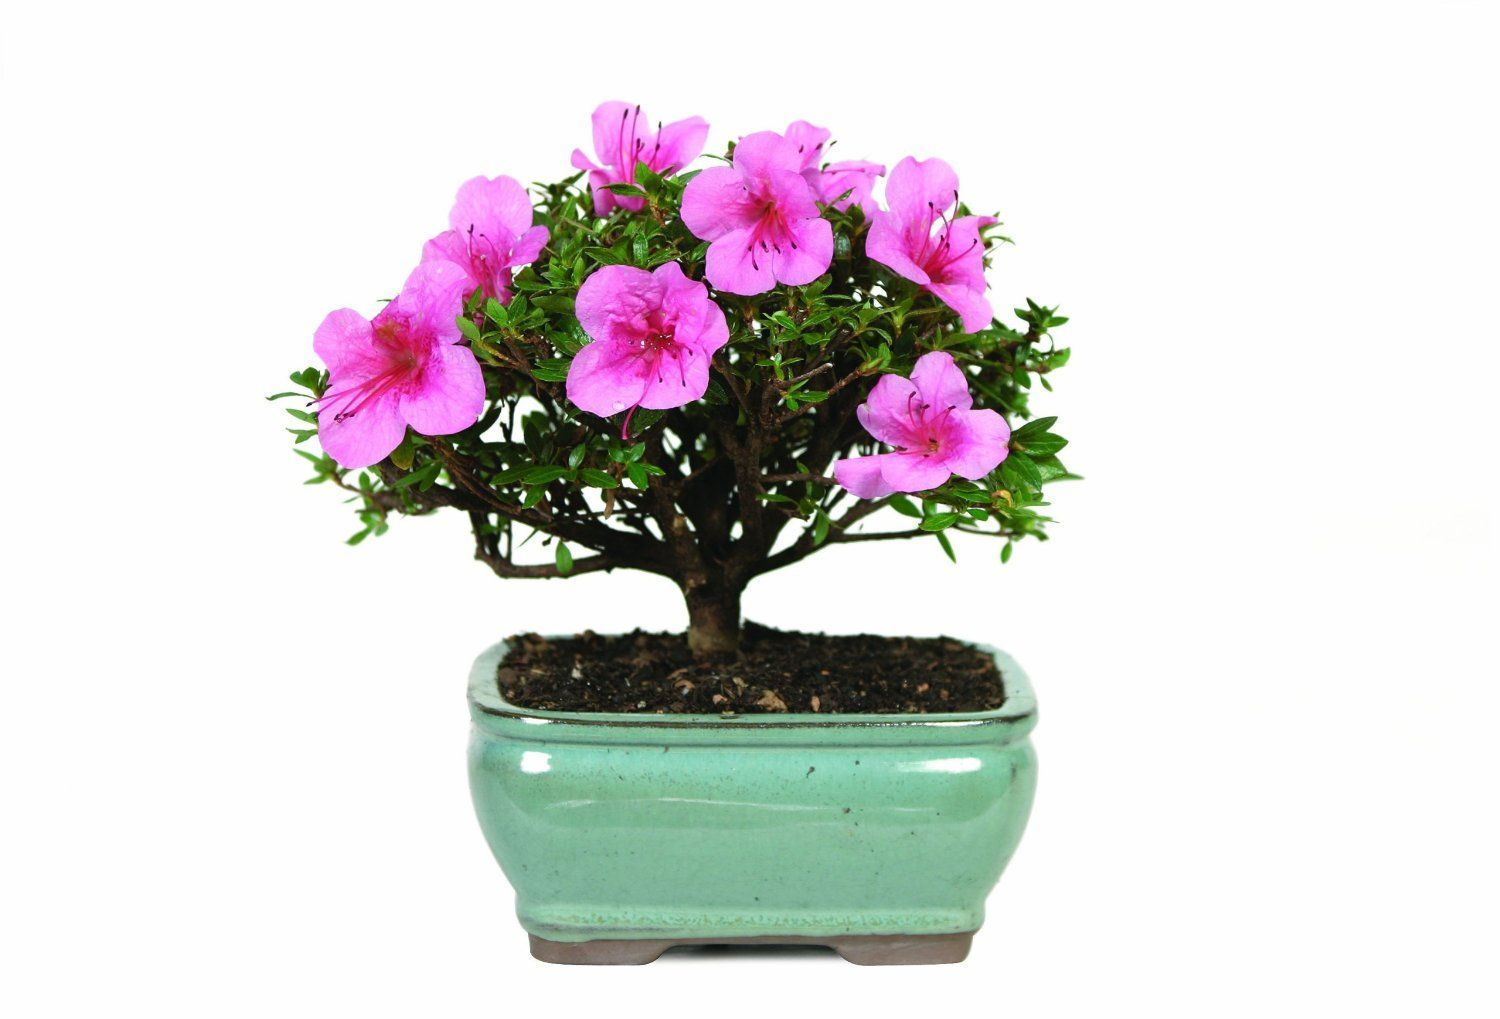 Small House Plants With Flowers 20 Best Small Indoor Plants To Spruce Up Your Space Houseplant